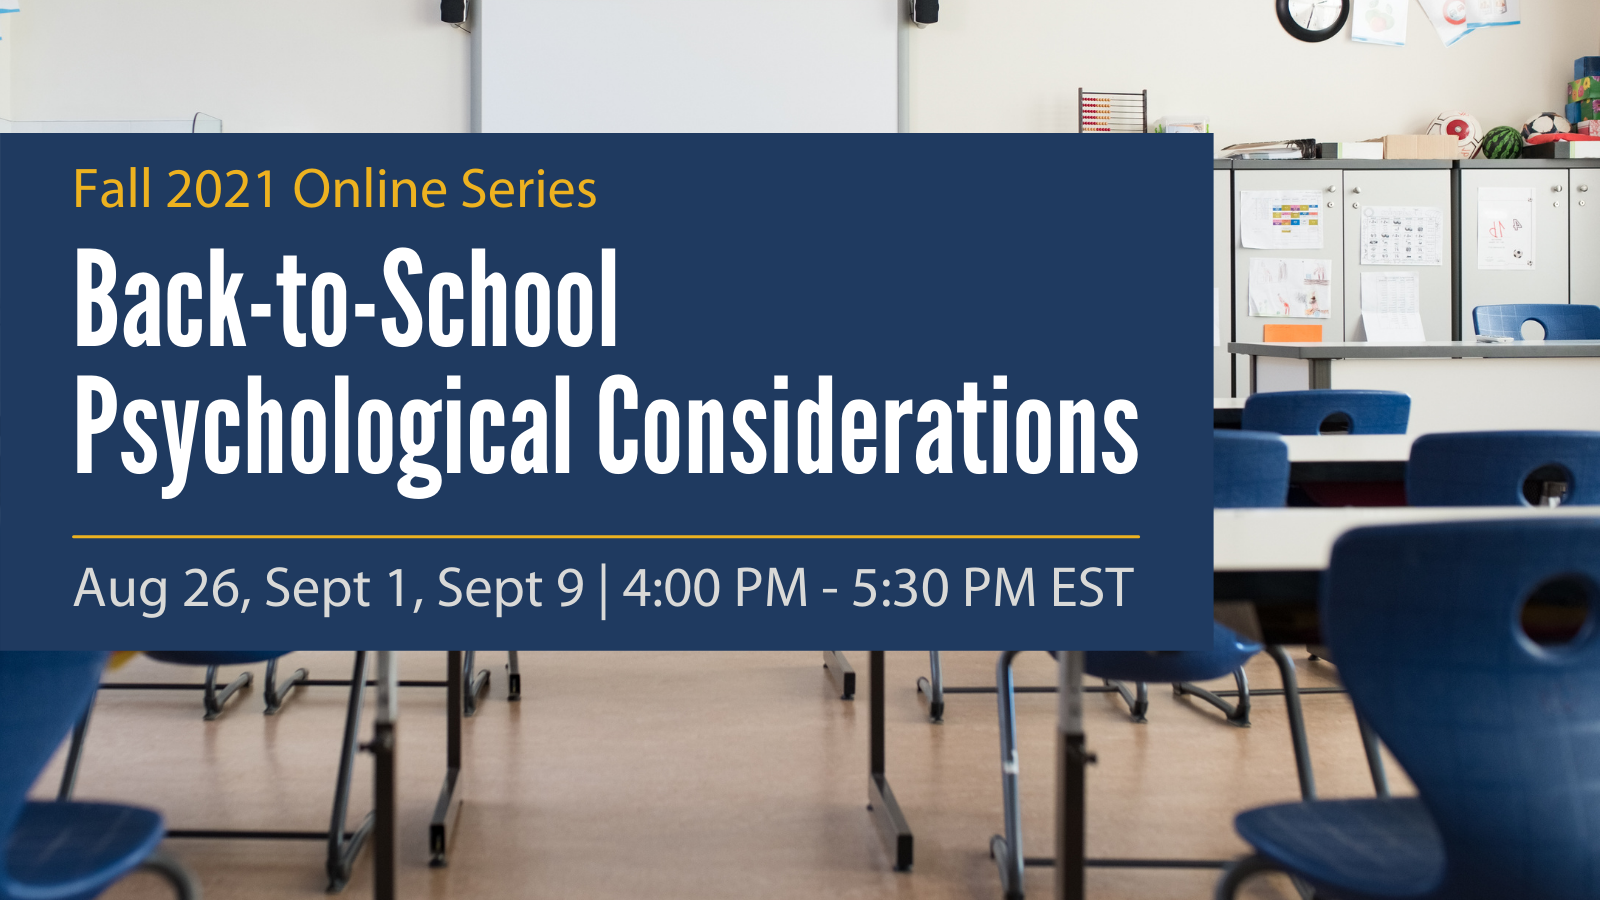 Fall 2021 Online Series - Back-to-School Psychological Considerations - Aug 26, Sept 1, Sept 9, 4:00 PM - 5:30 PM EST